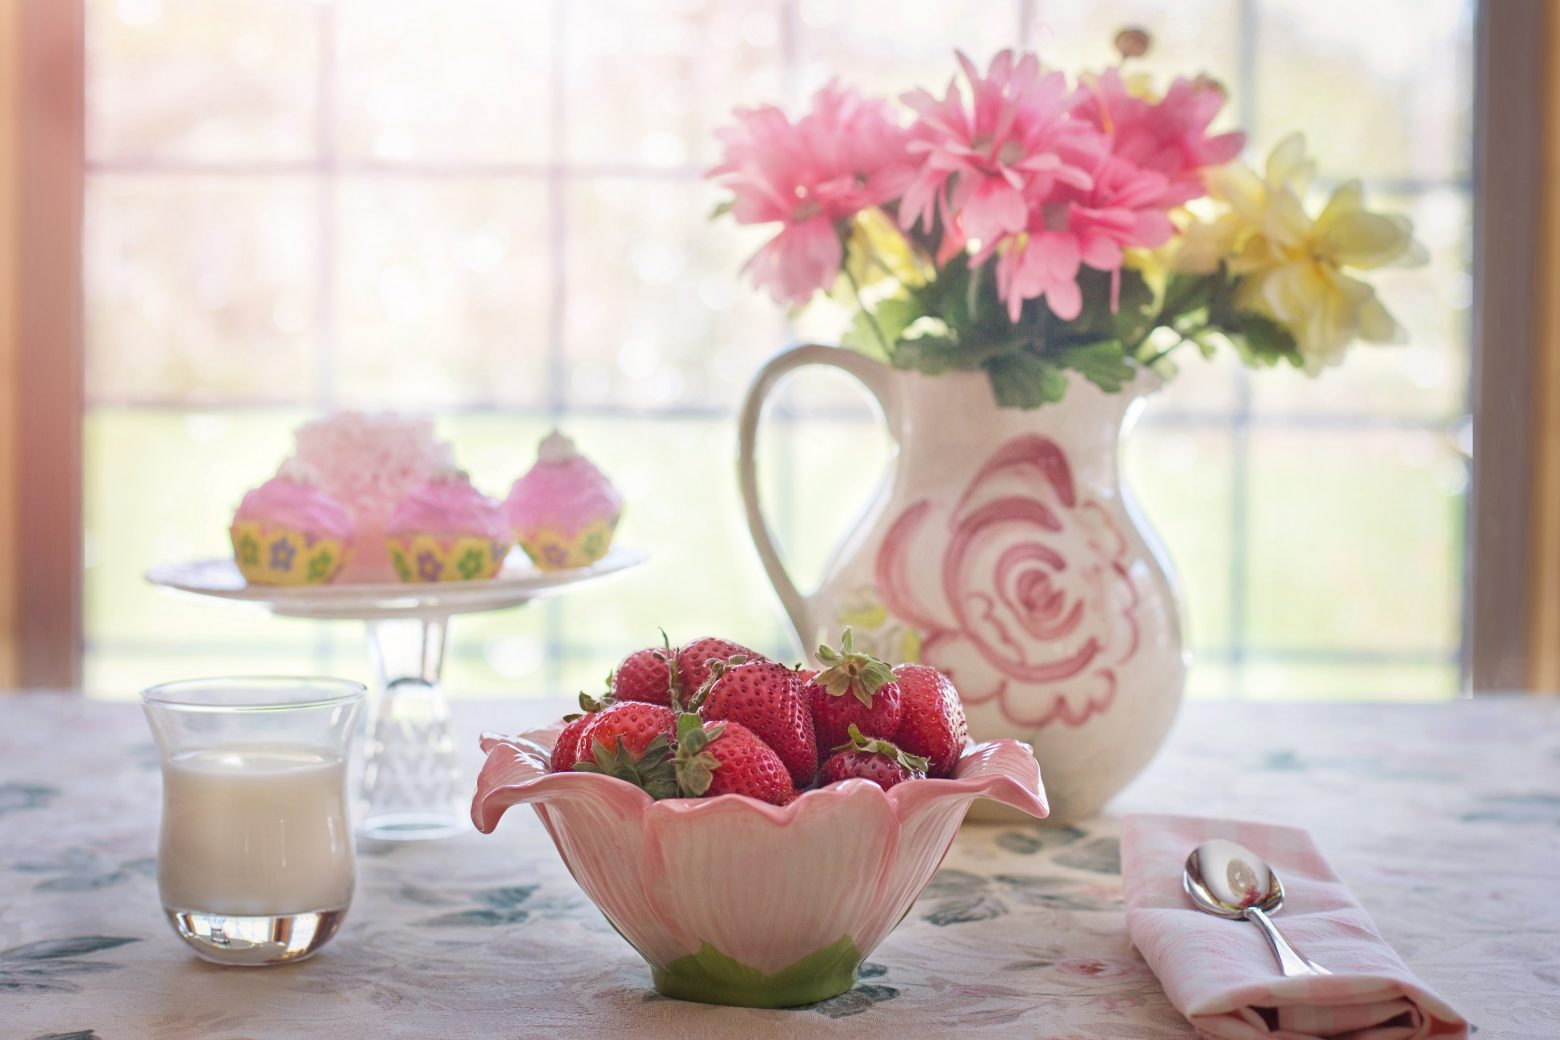 strawberries-in-bowl-783351